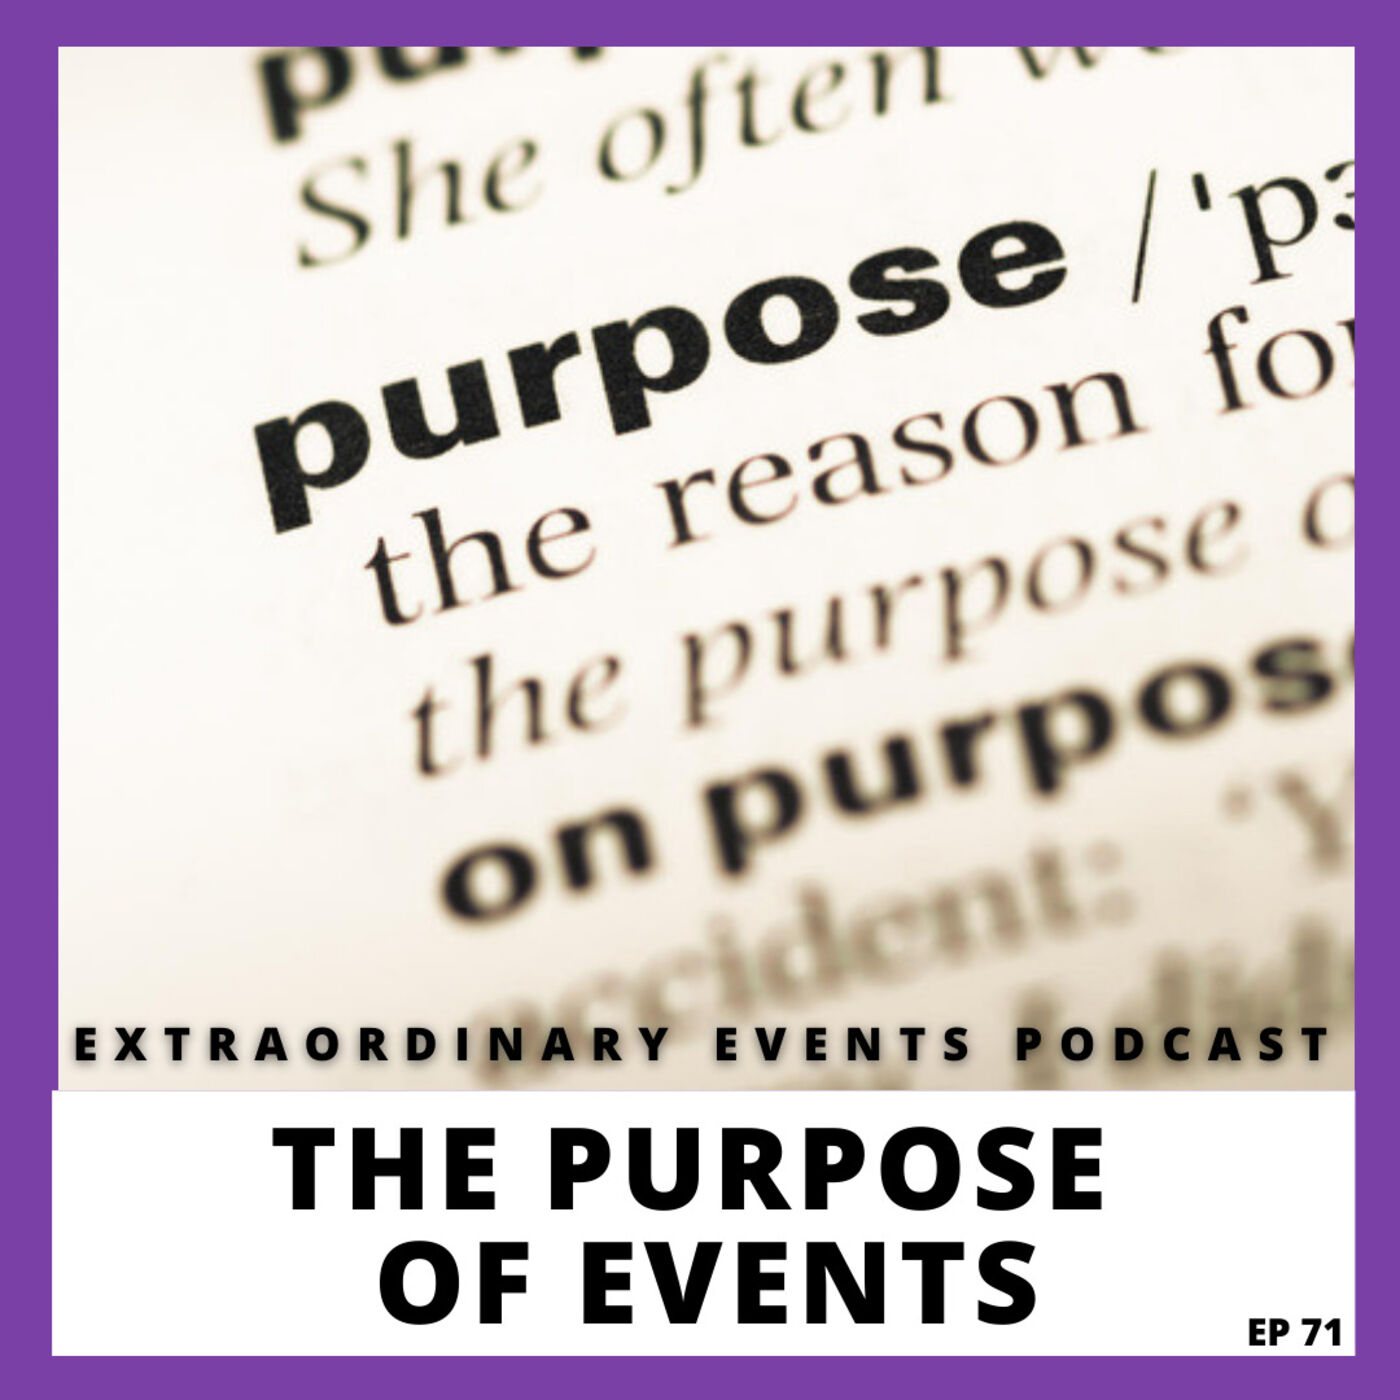 Ep 71: The Purpose of Events